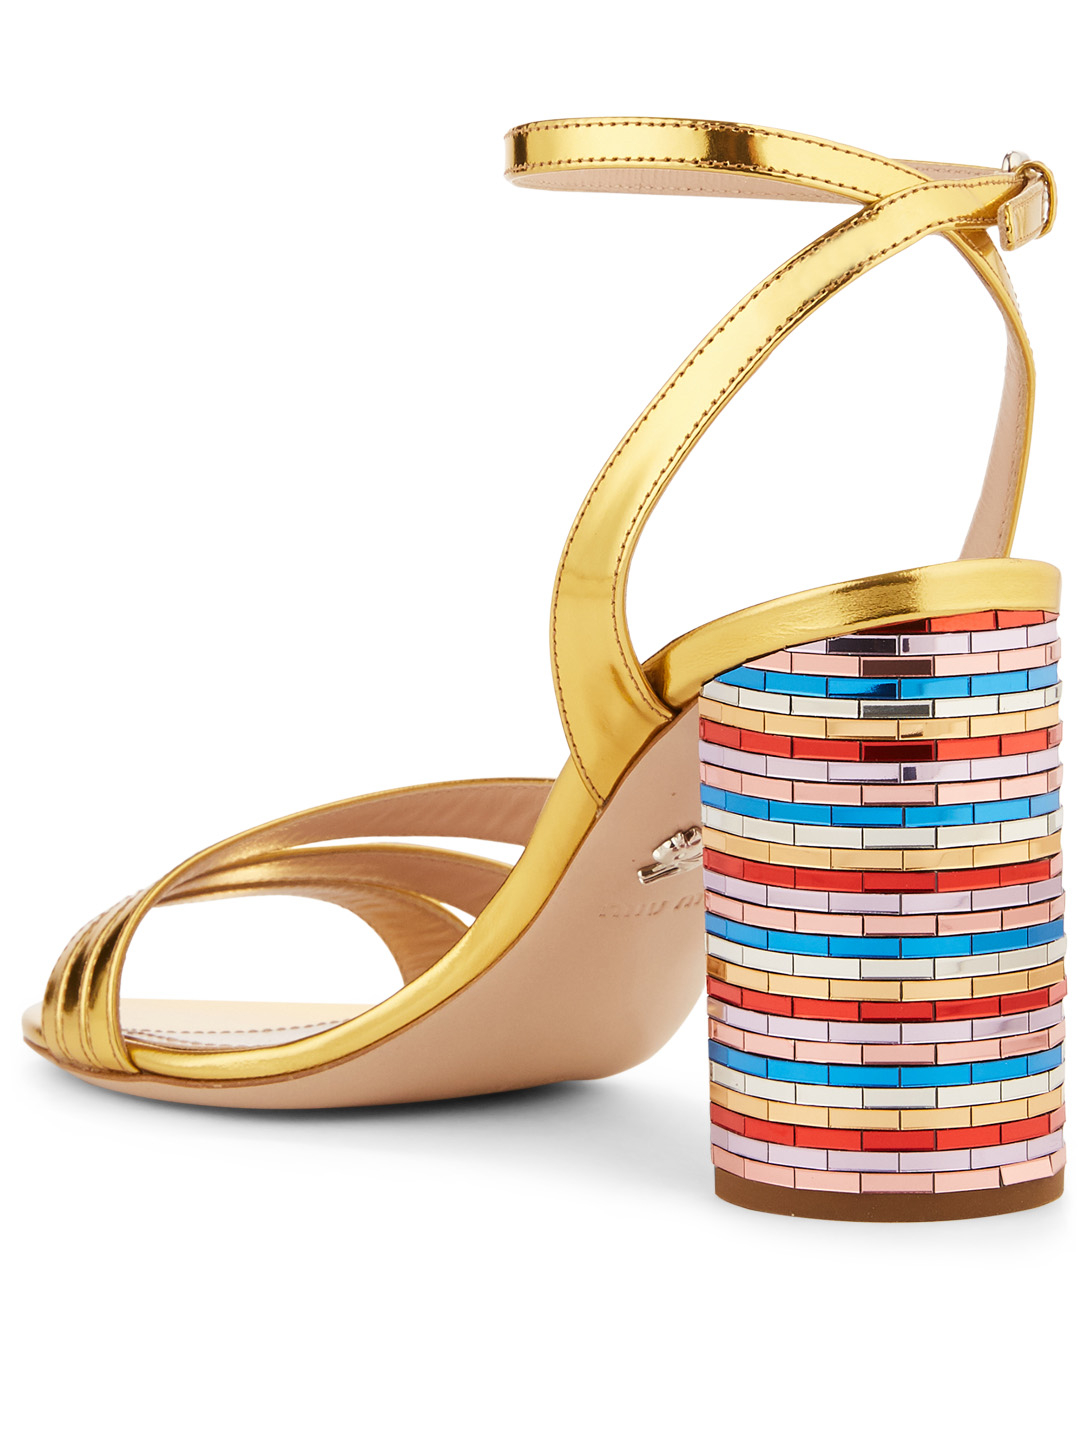 MIU MIU Patent Leather Rainbow Heeled Sandals Womens Gold